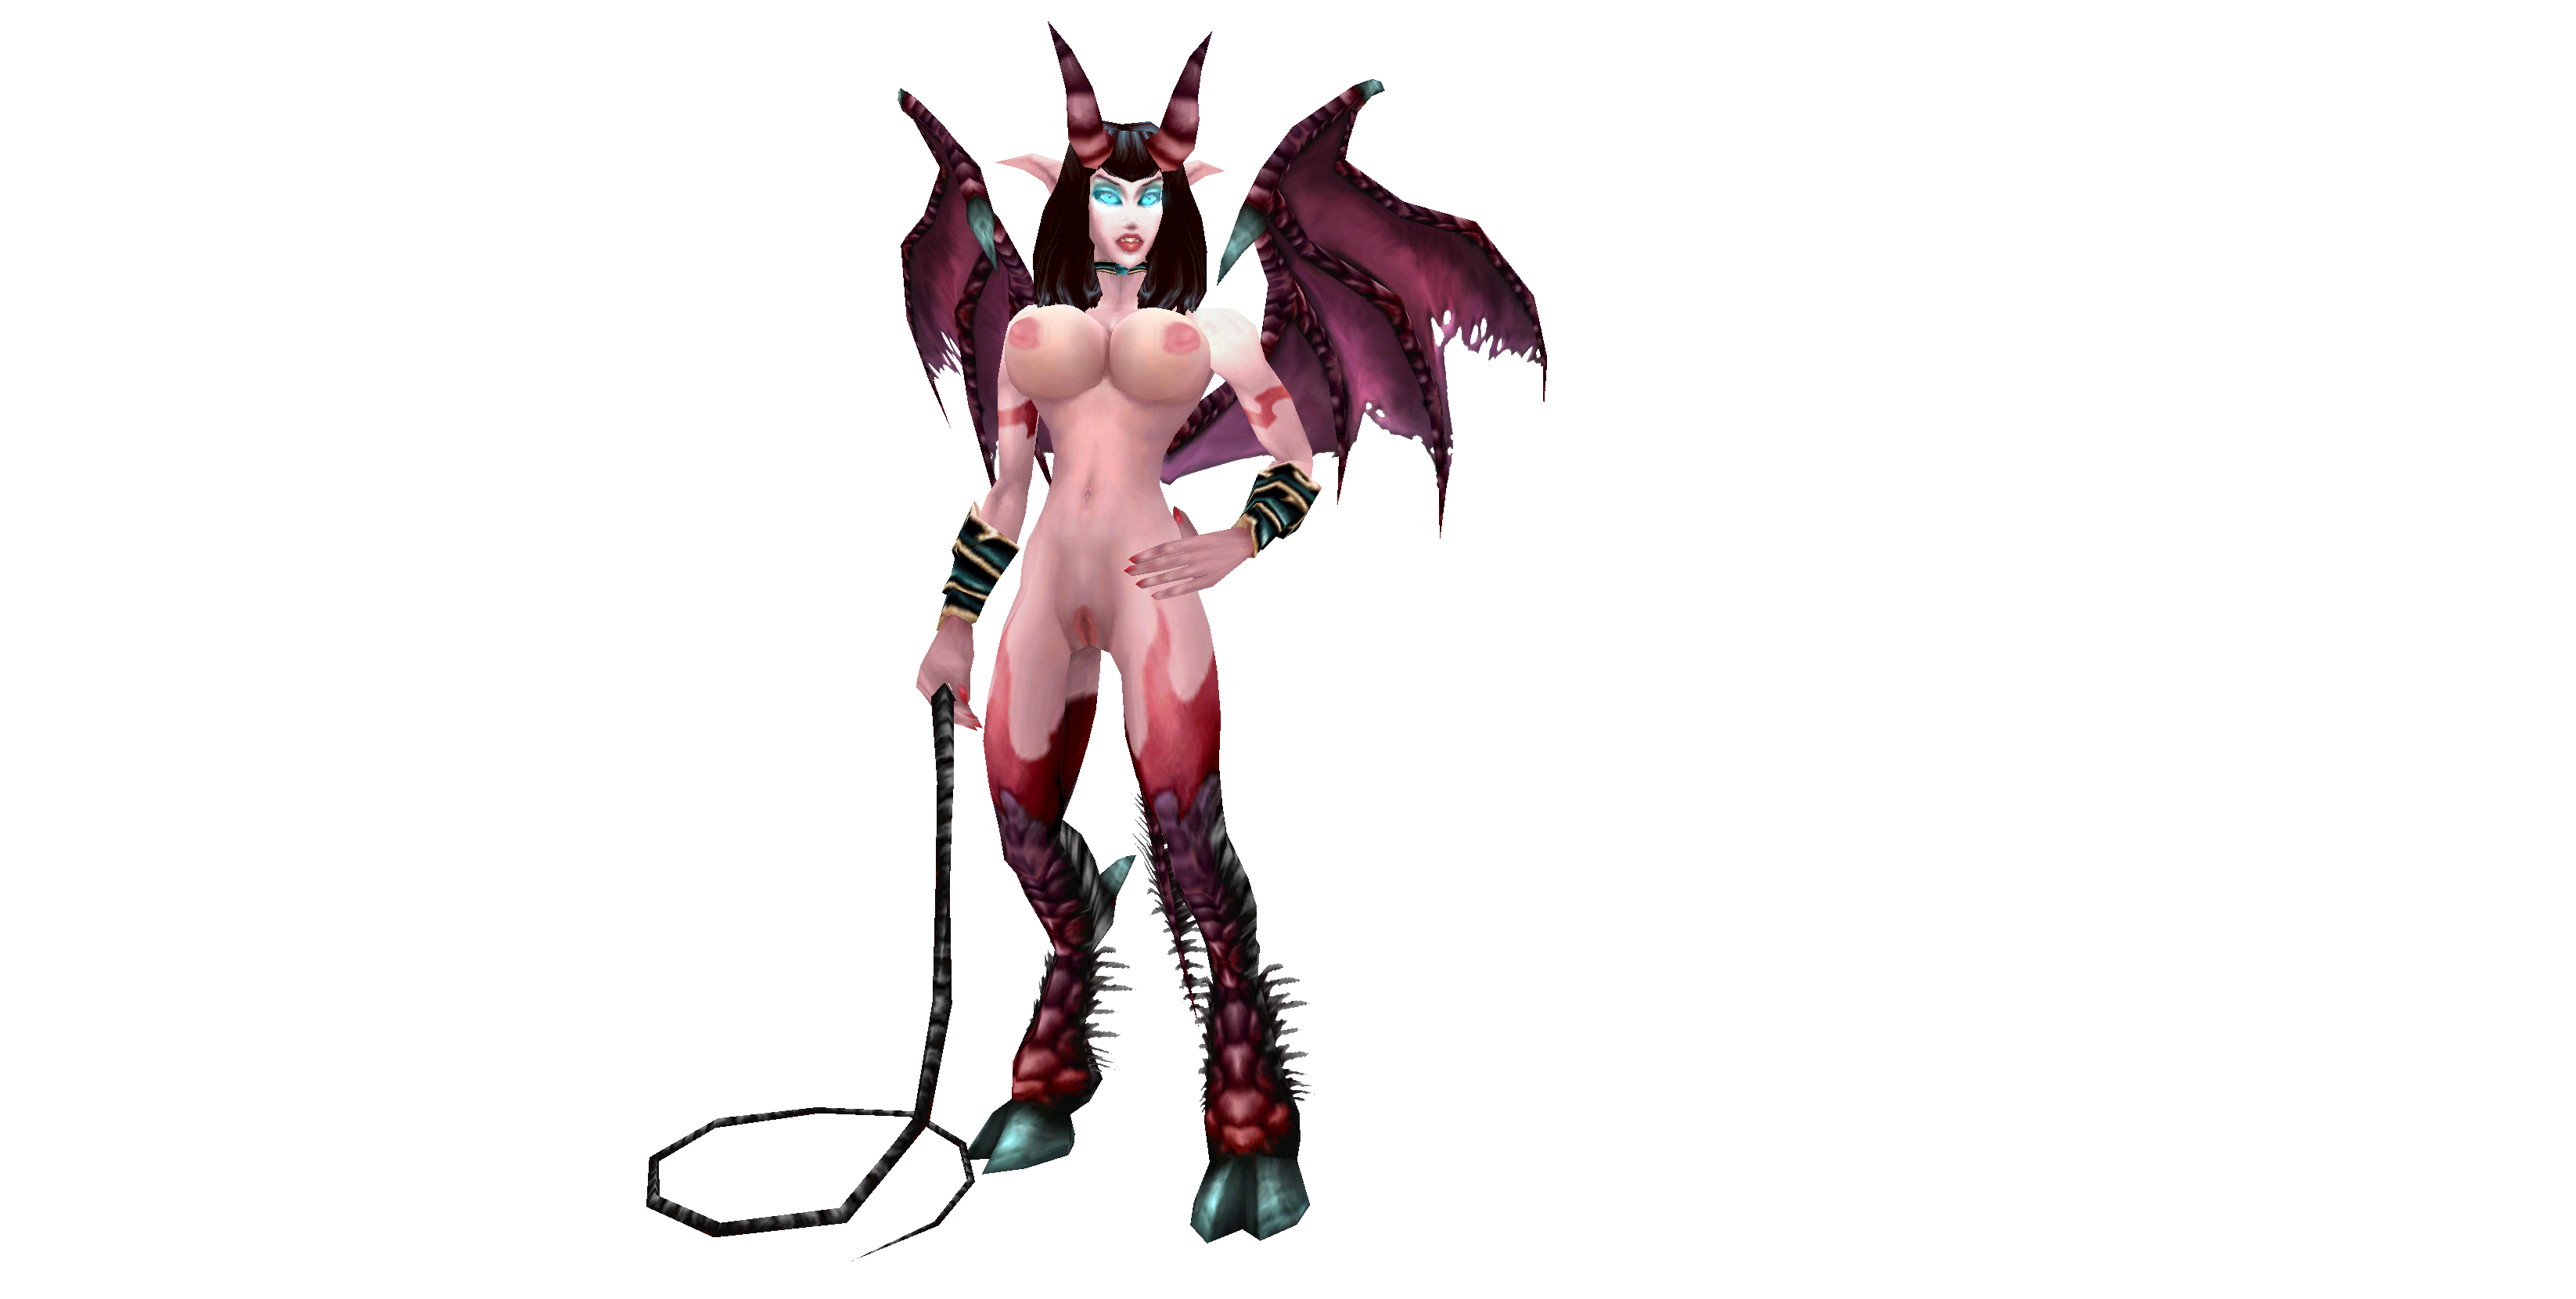 Free Warcraft 3 nude skins erotic pictures